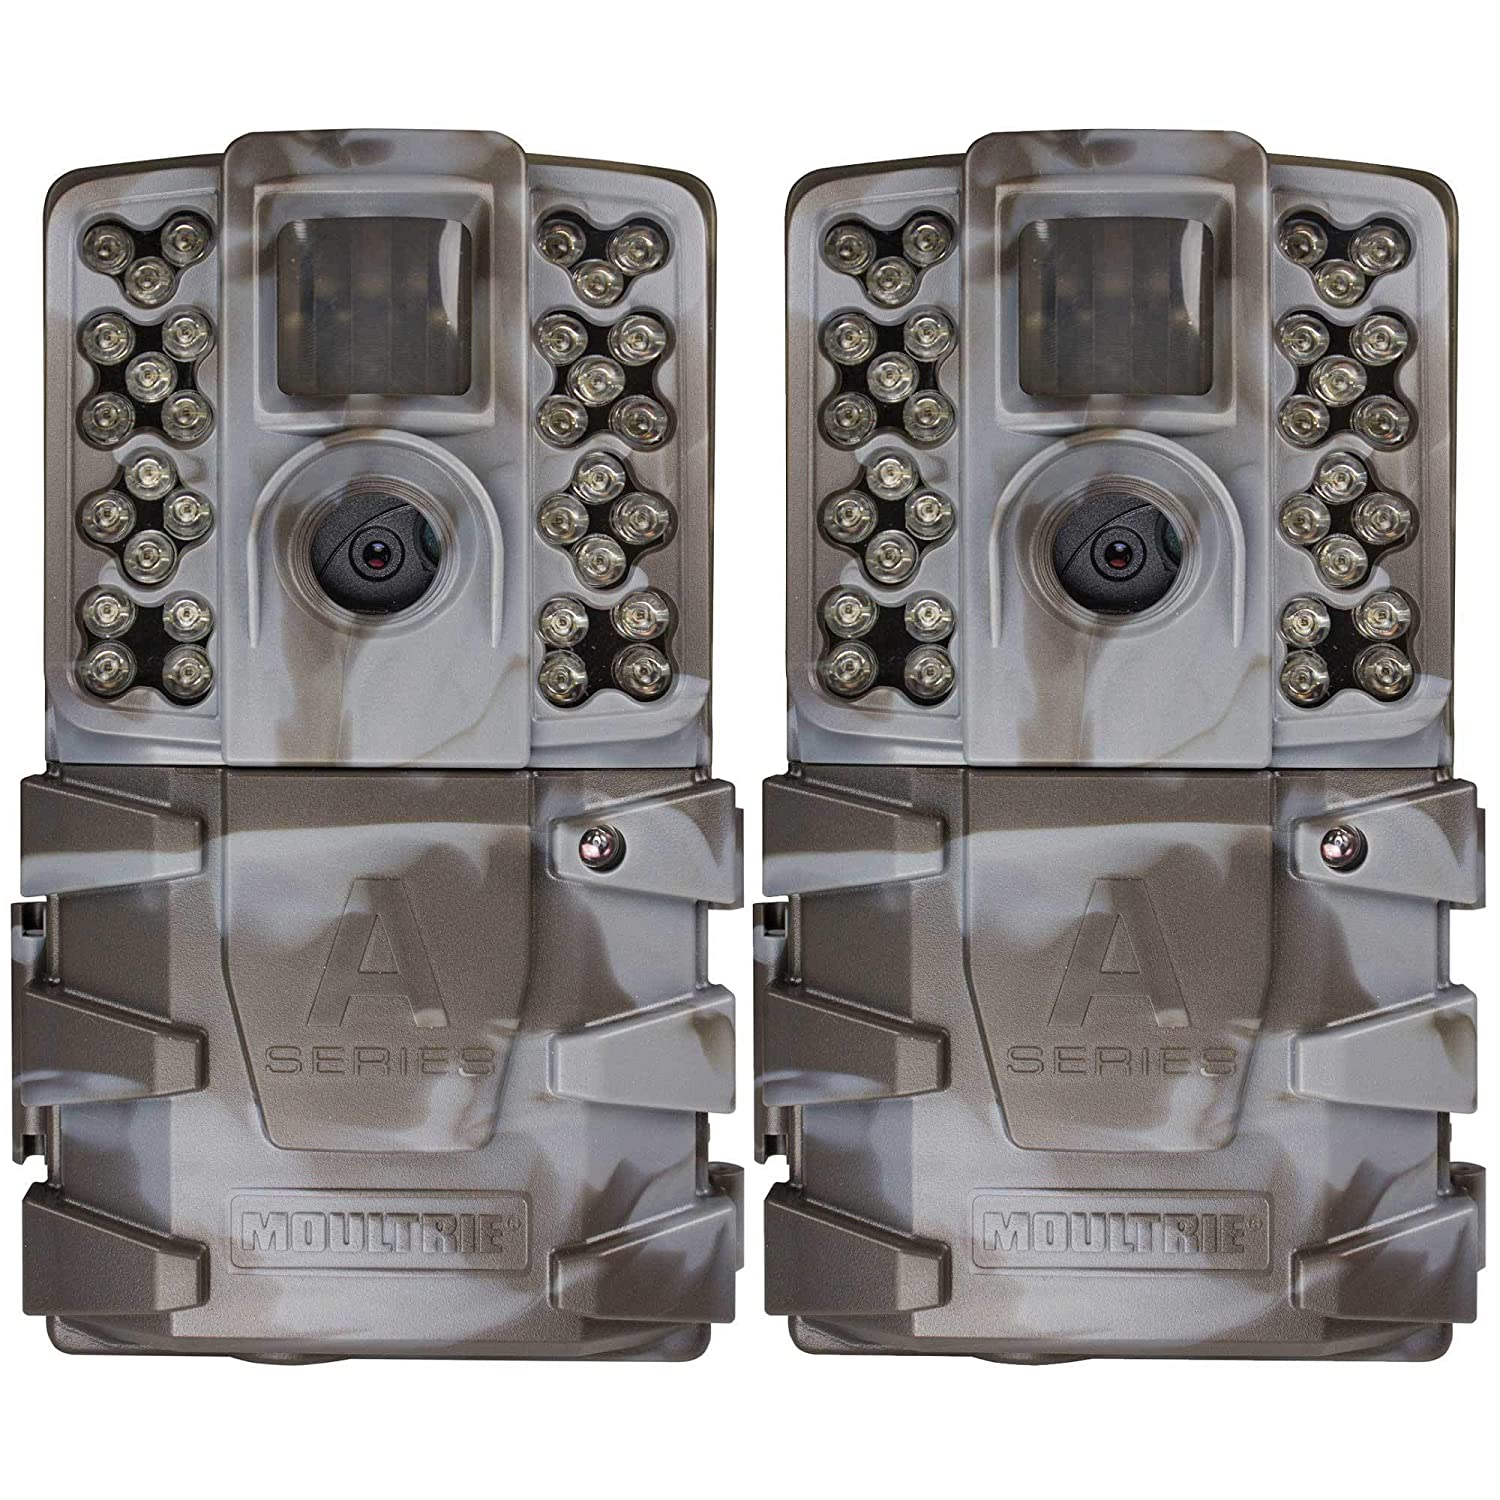 Moultrie A-35 14MP 60 HD Video Low Glow Infrared Game Trail Camera 2 Pack